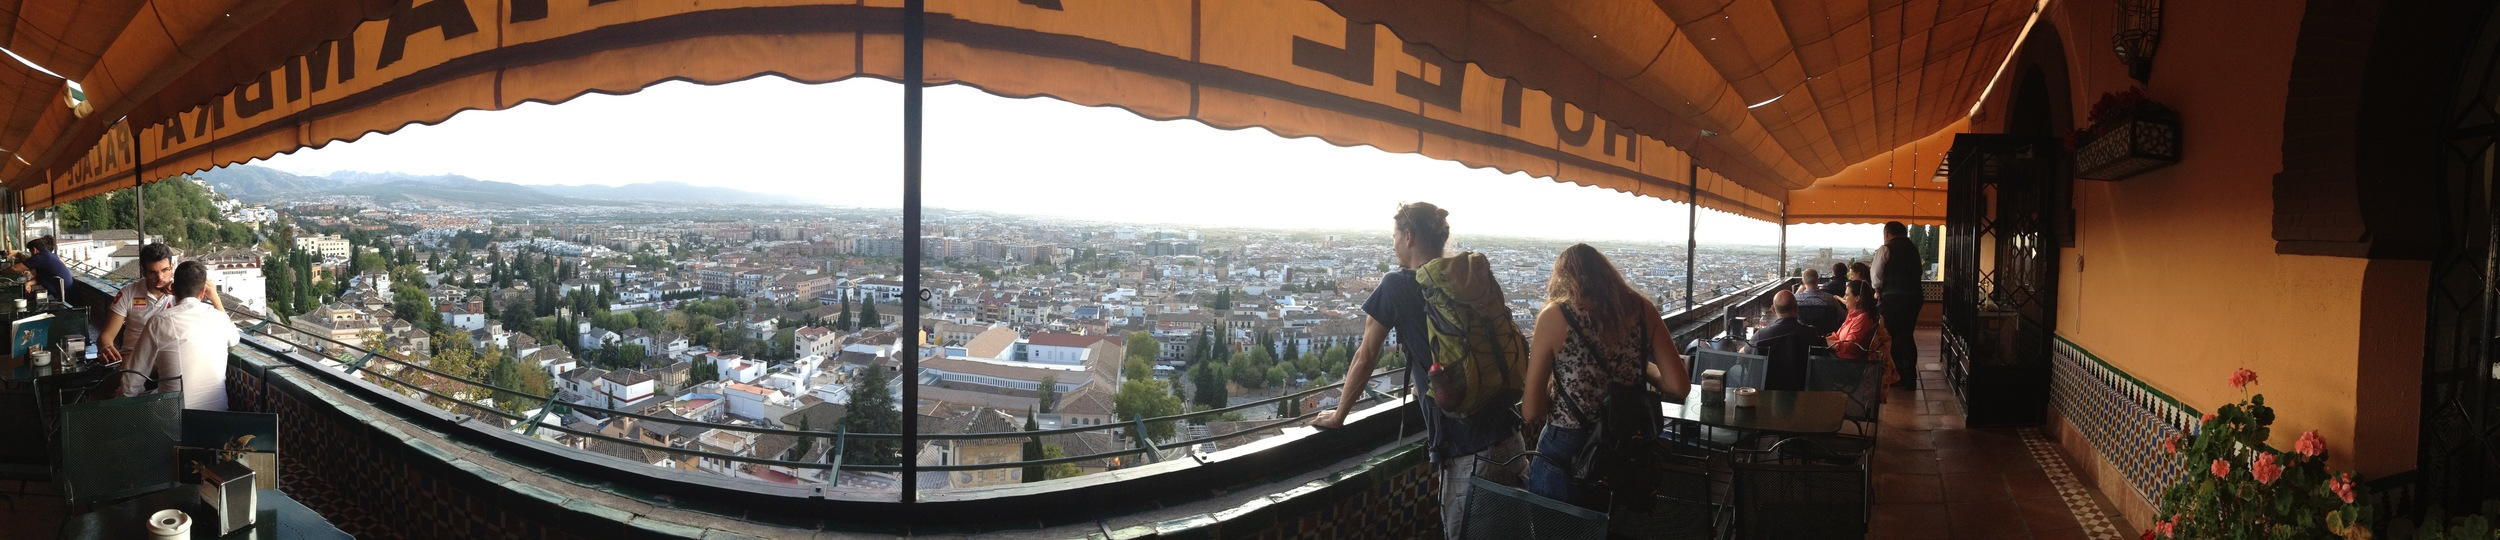 The panoramic view of Granada from the Hotel Alhambra.